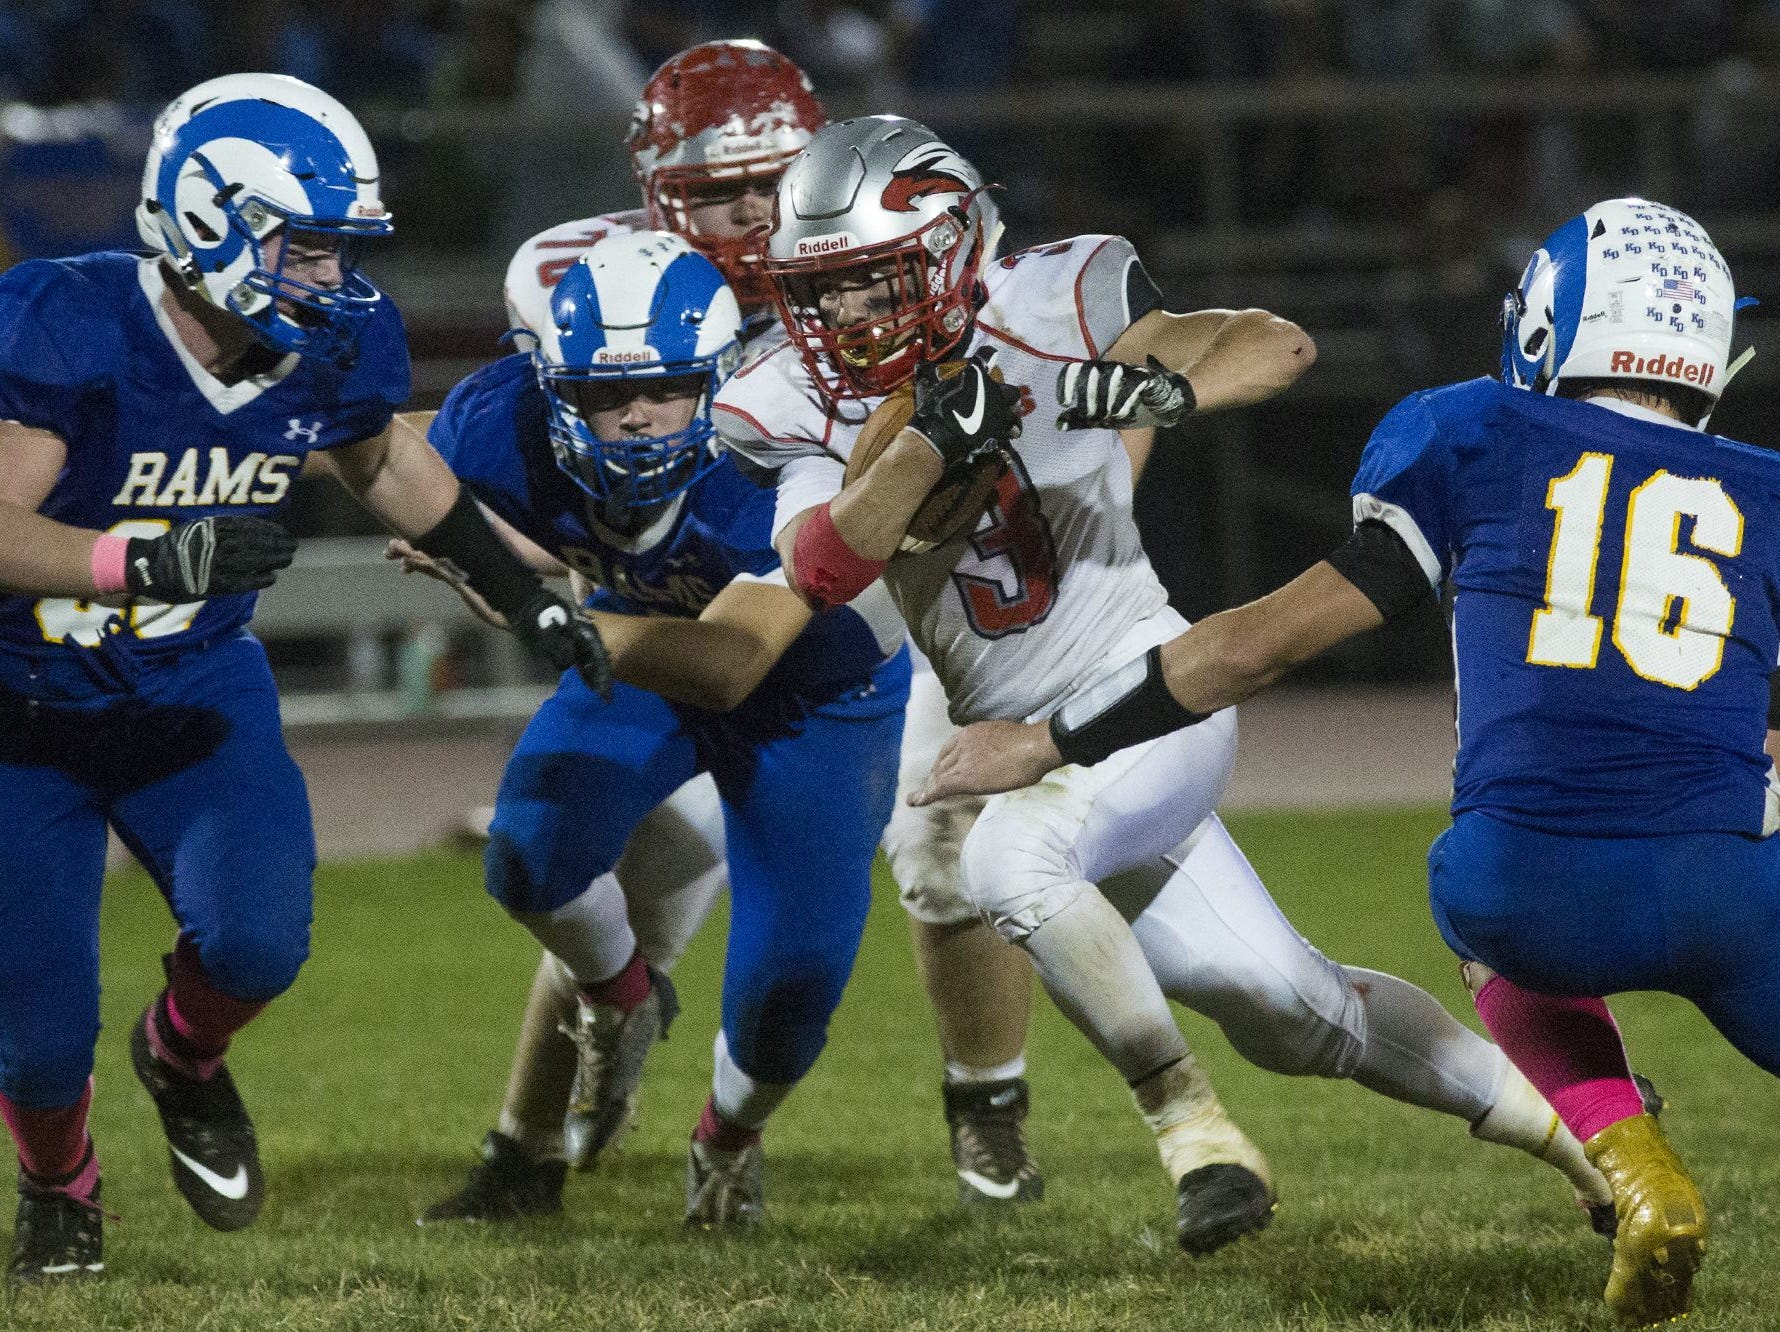 Dover?s Derek Arevalo carries the ball against Kennard-Dale  on Friday. He had 128 combined yards and two touchdowns